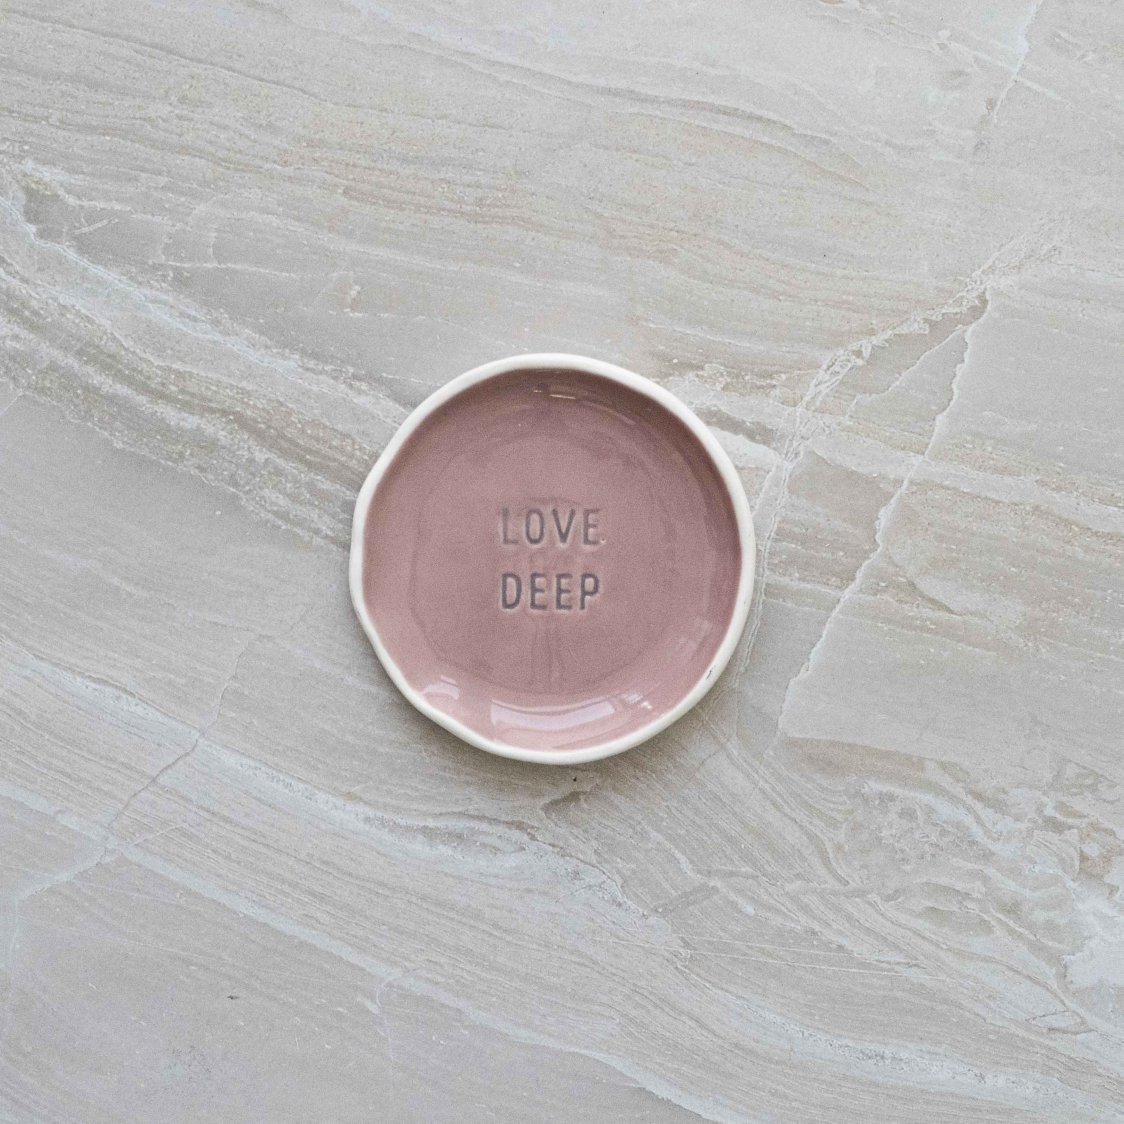 CERAMICTRAY - CANV LOVE DEEP ORGANIC STAMPED